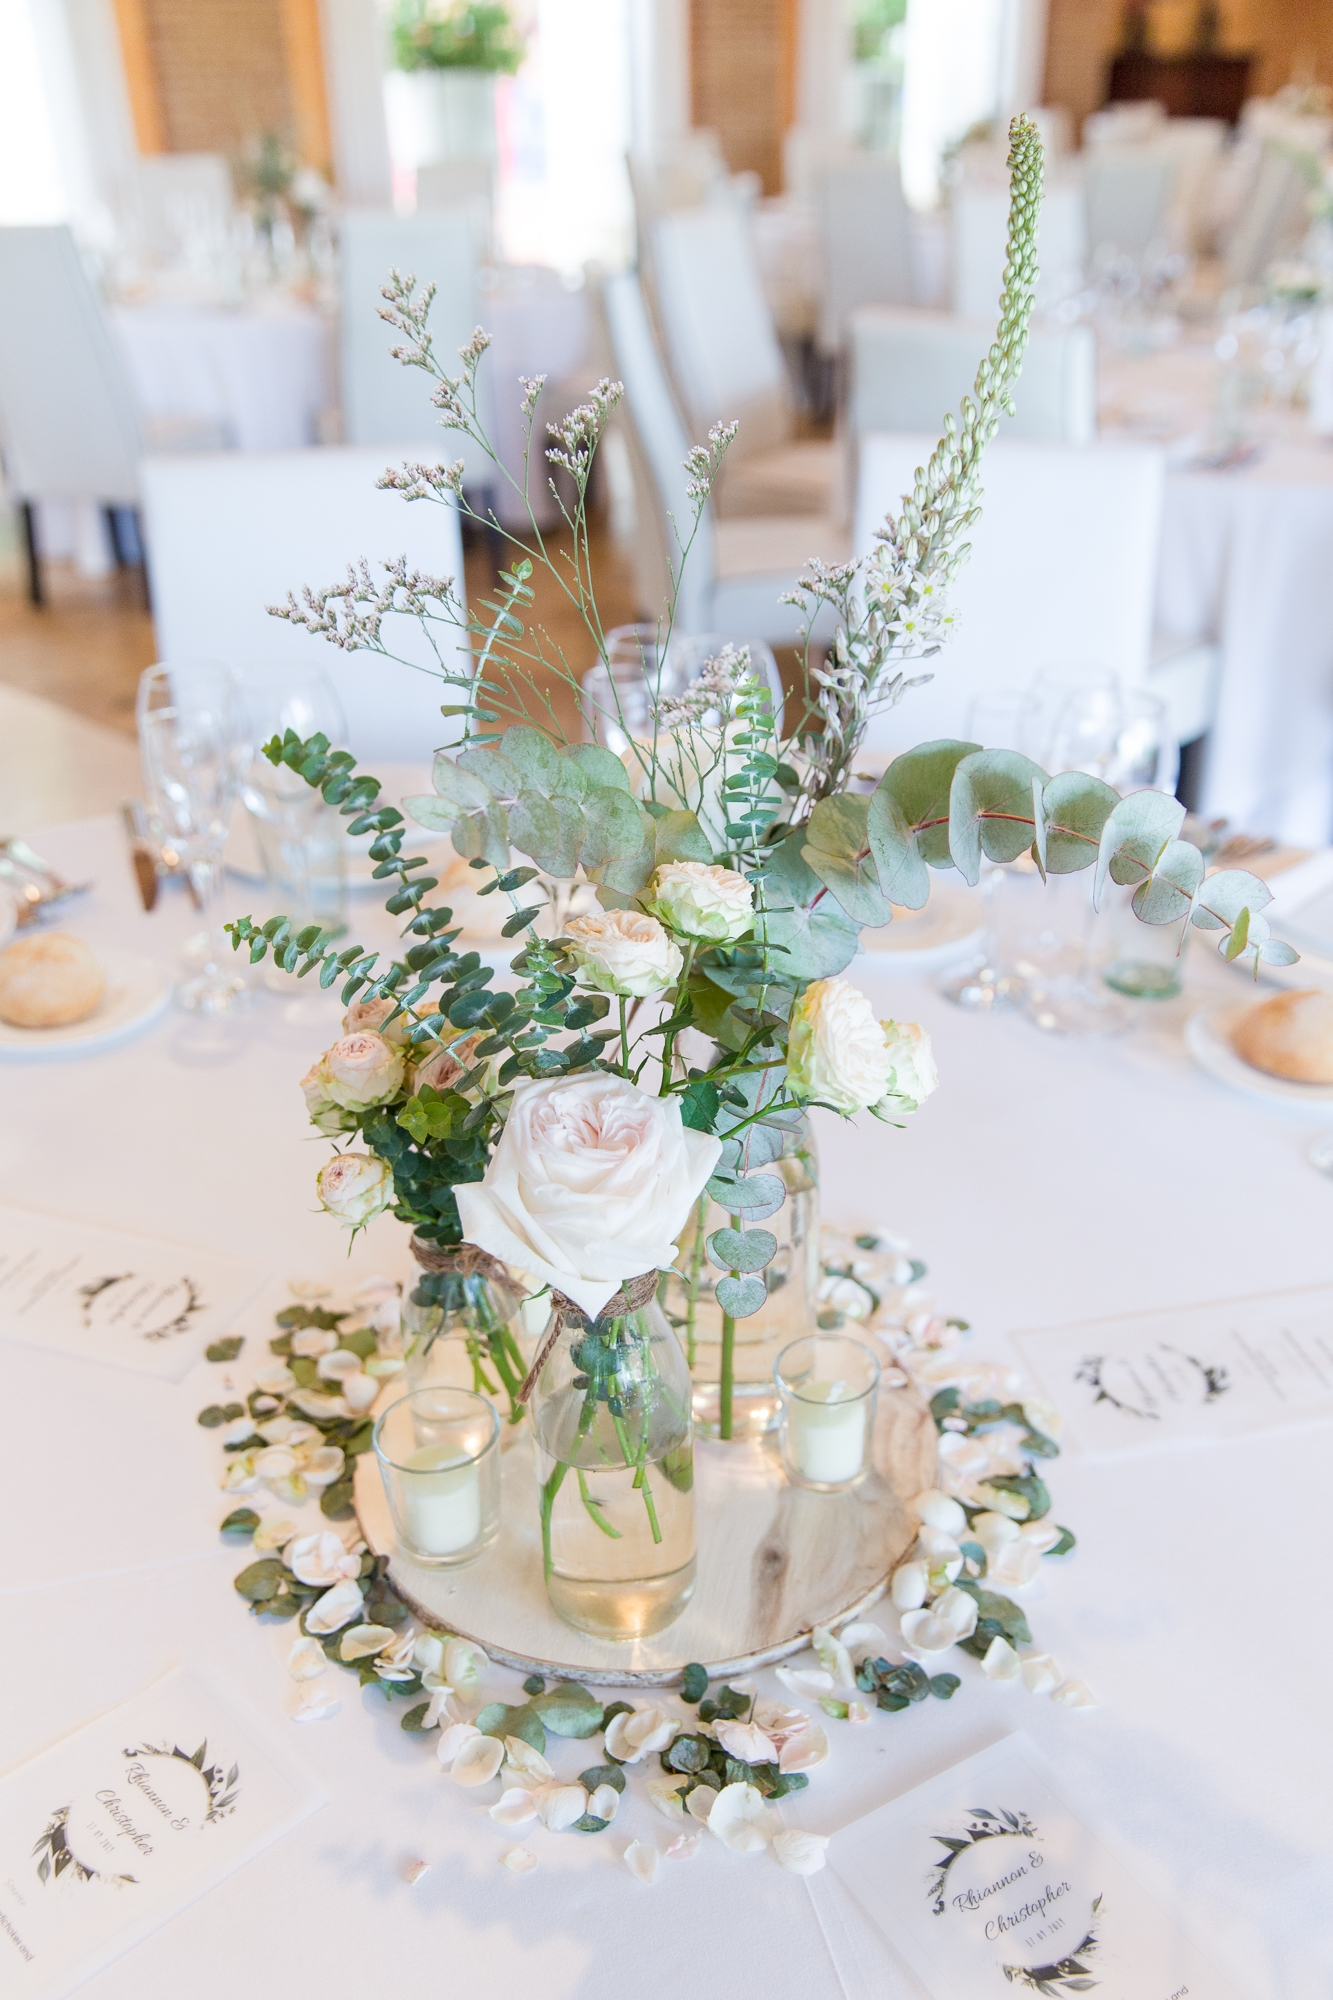 white wedding floral centrepiece by La Toscana at Hotel Les Rotes in Denia